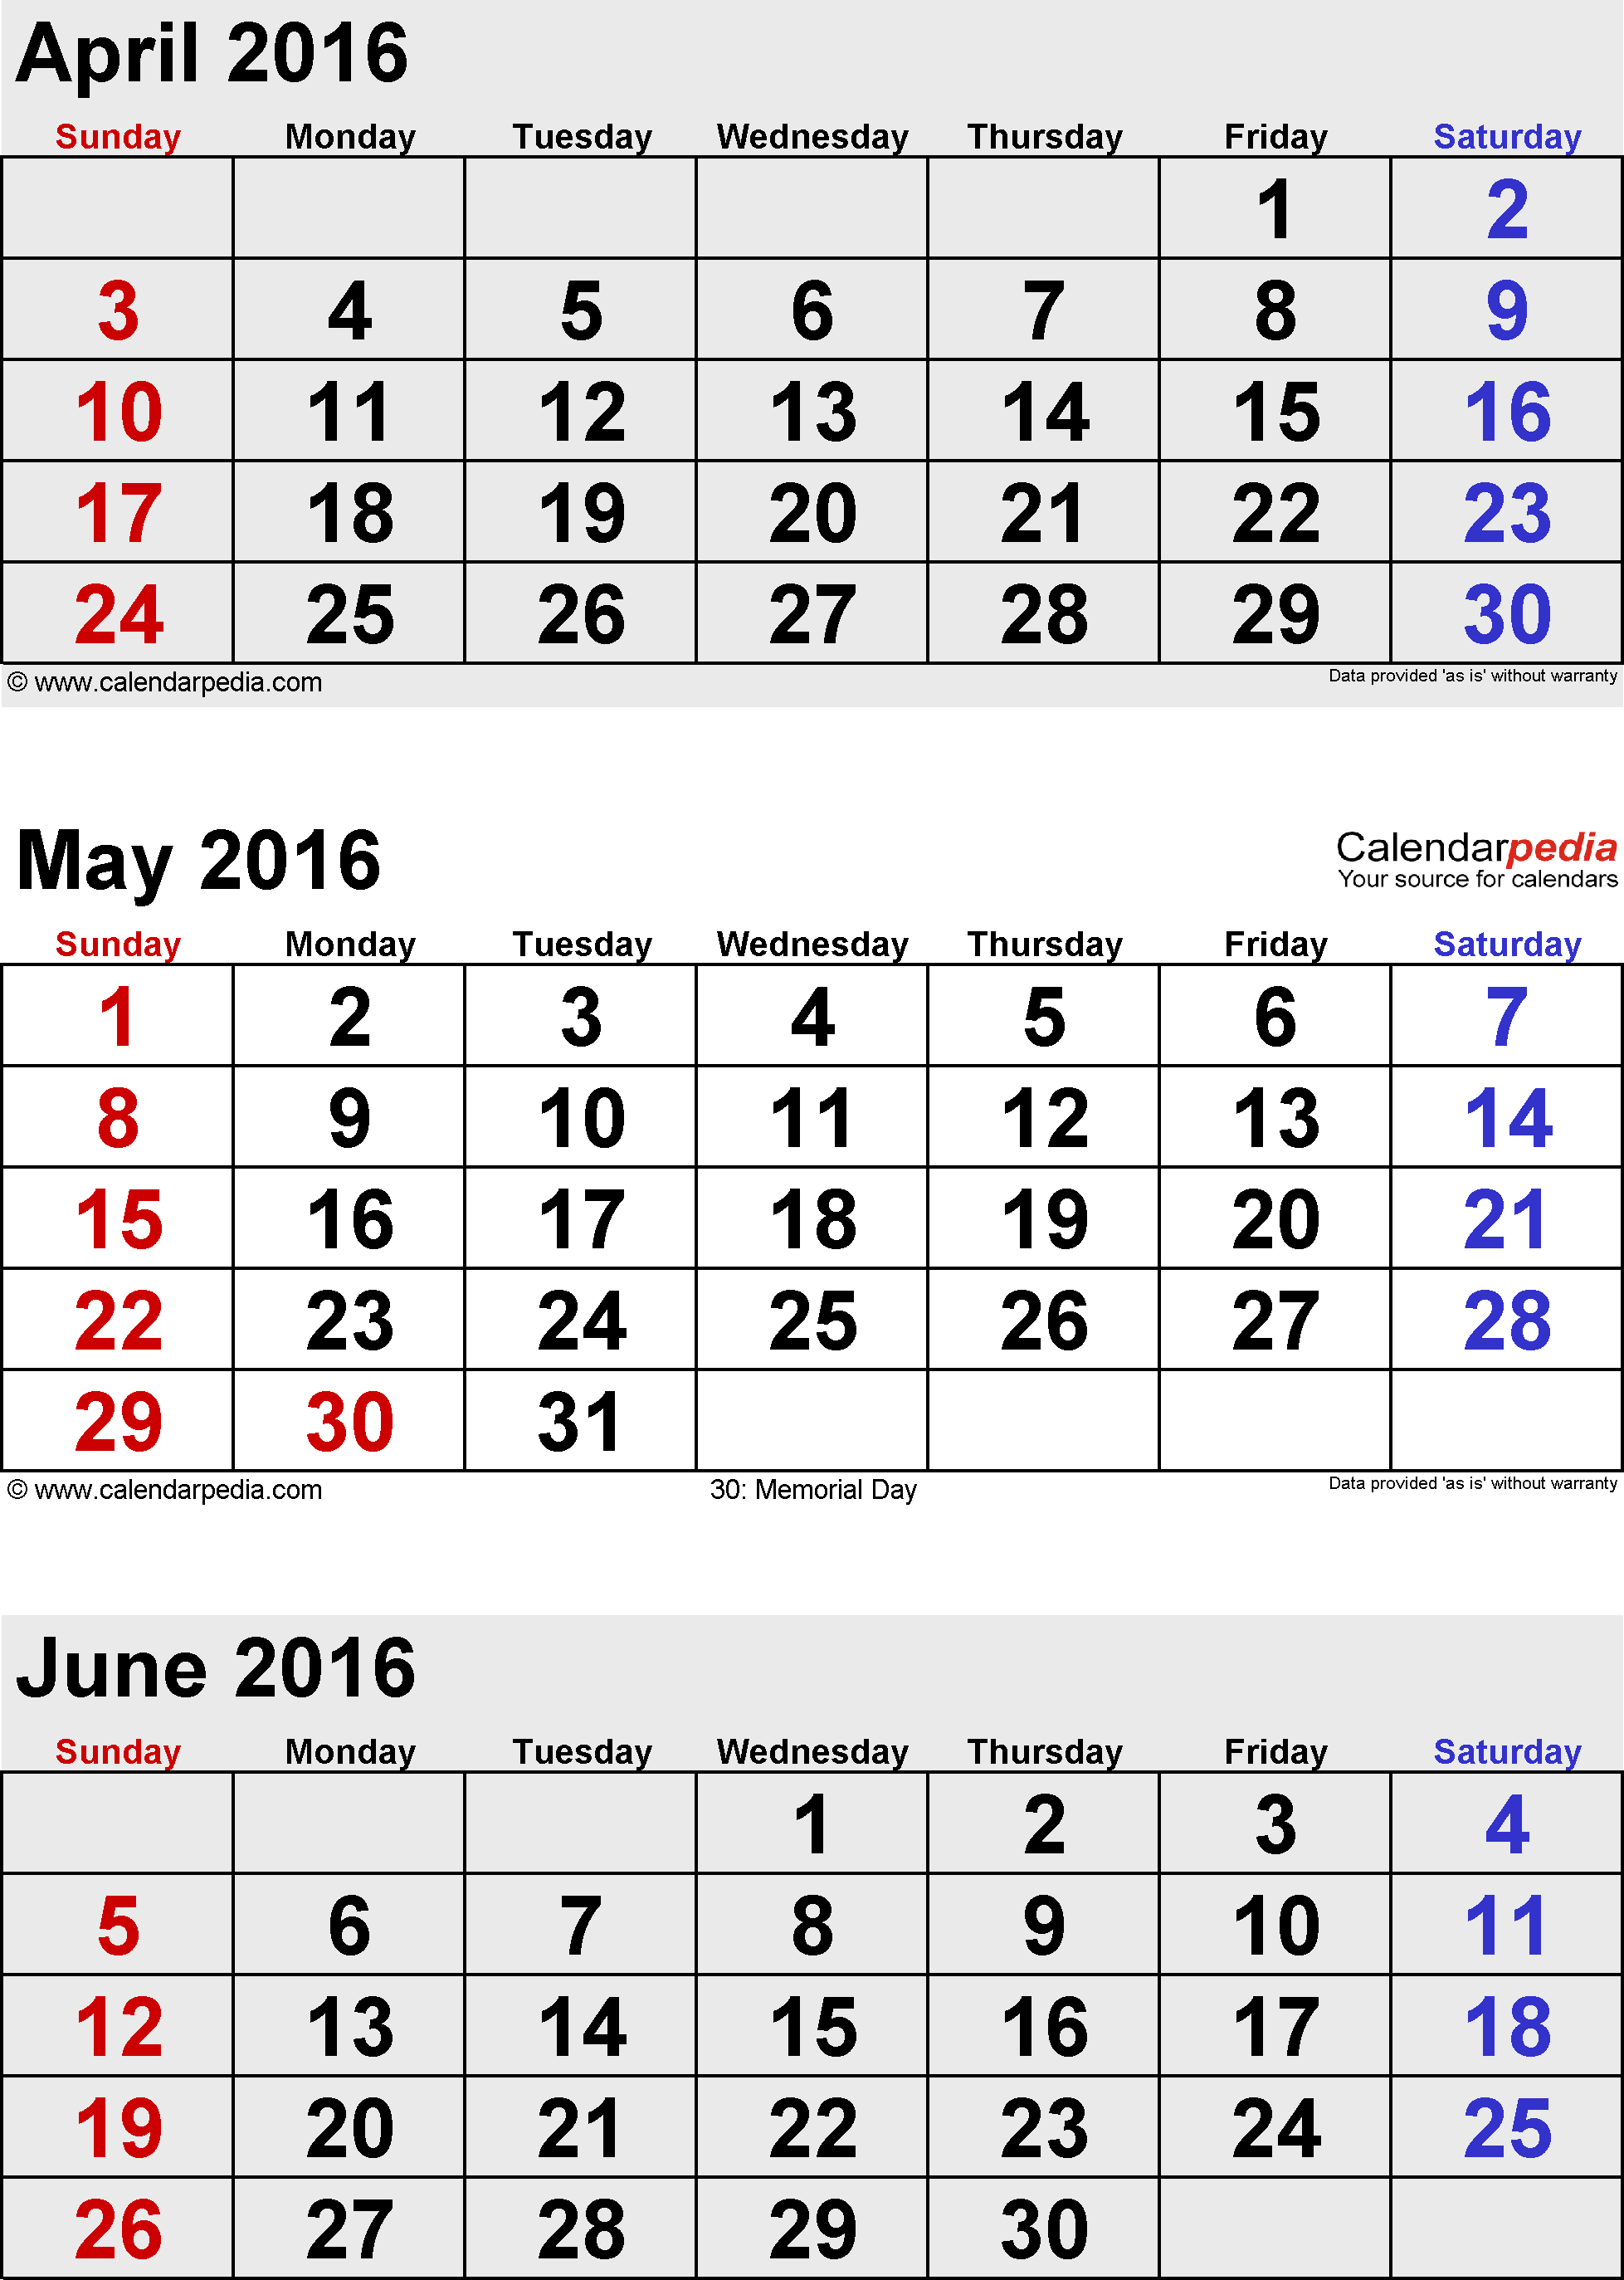 June 2016 Calendars For Word, Excel & Pdf with 3 Month Calendar Templates May June July